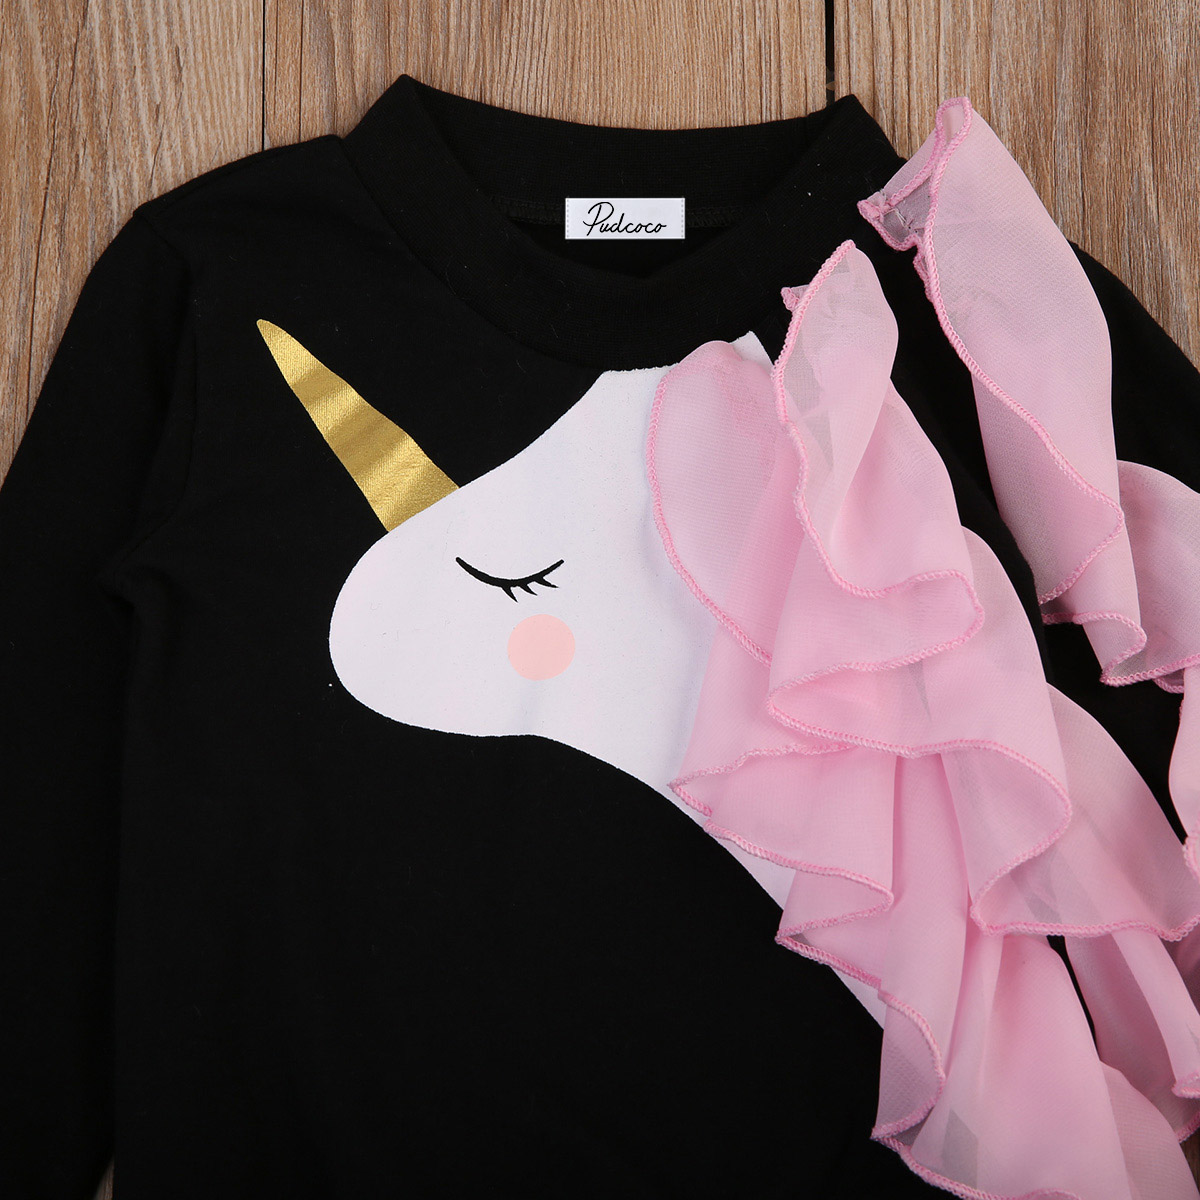 Able Newborn Baby Girls Unicorn Ruffle Tops Tshirt Sweatshirts Long Sleeve Autumn Clothes